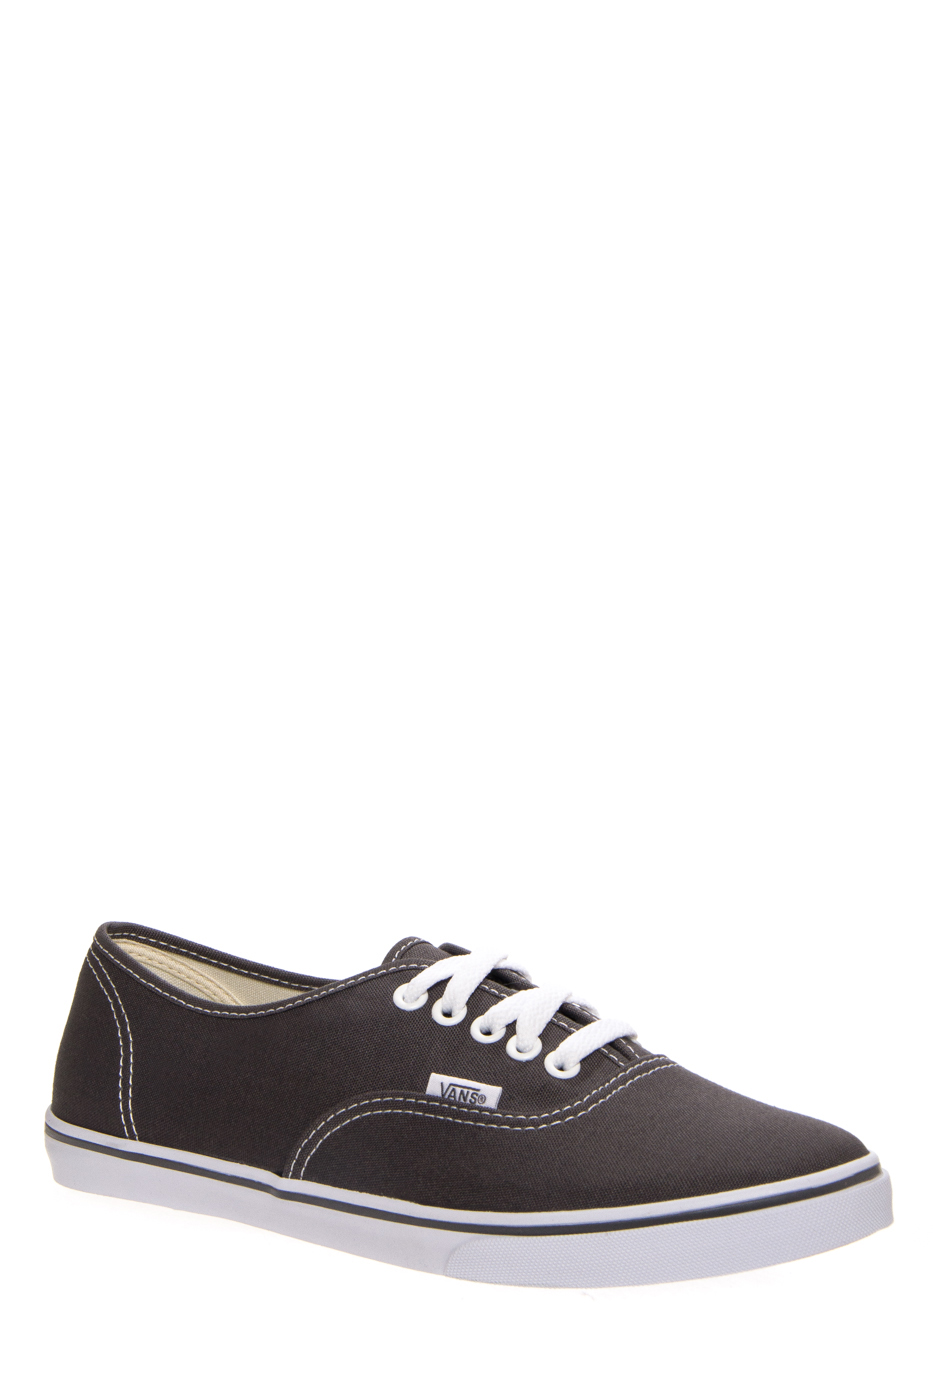 VANS Unisex Authentic Lo Pro Sneakers - Pewter / True White